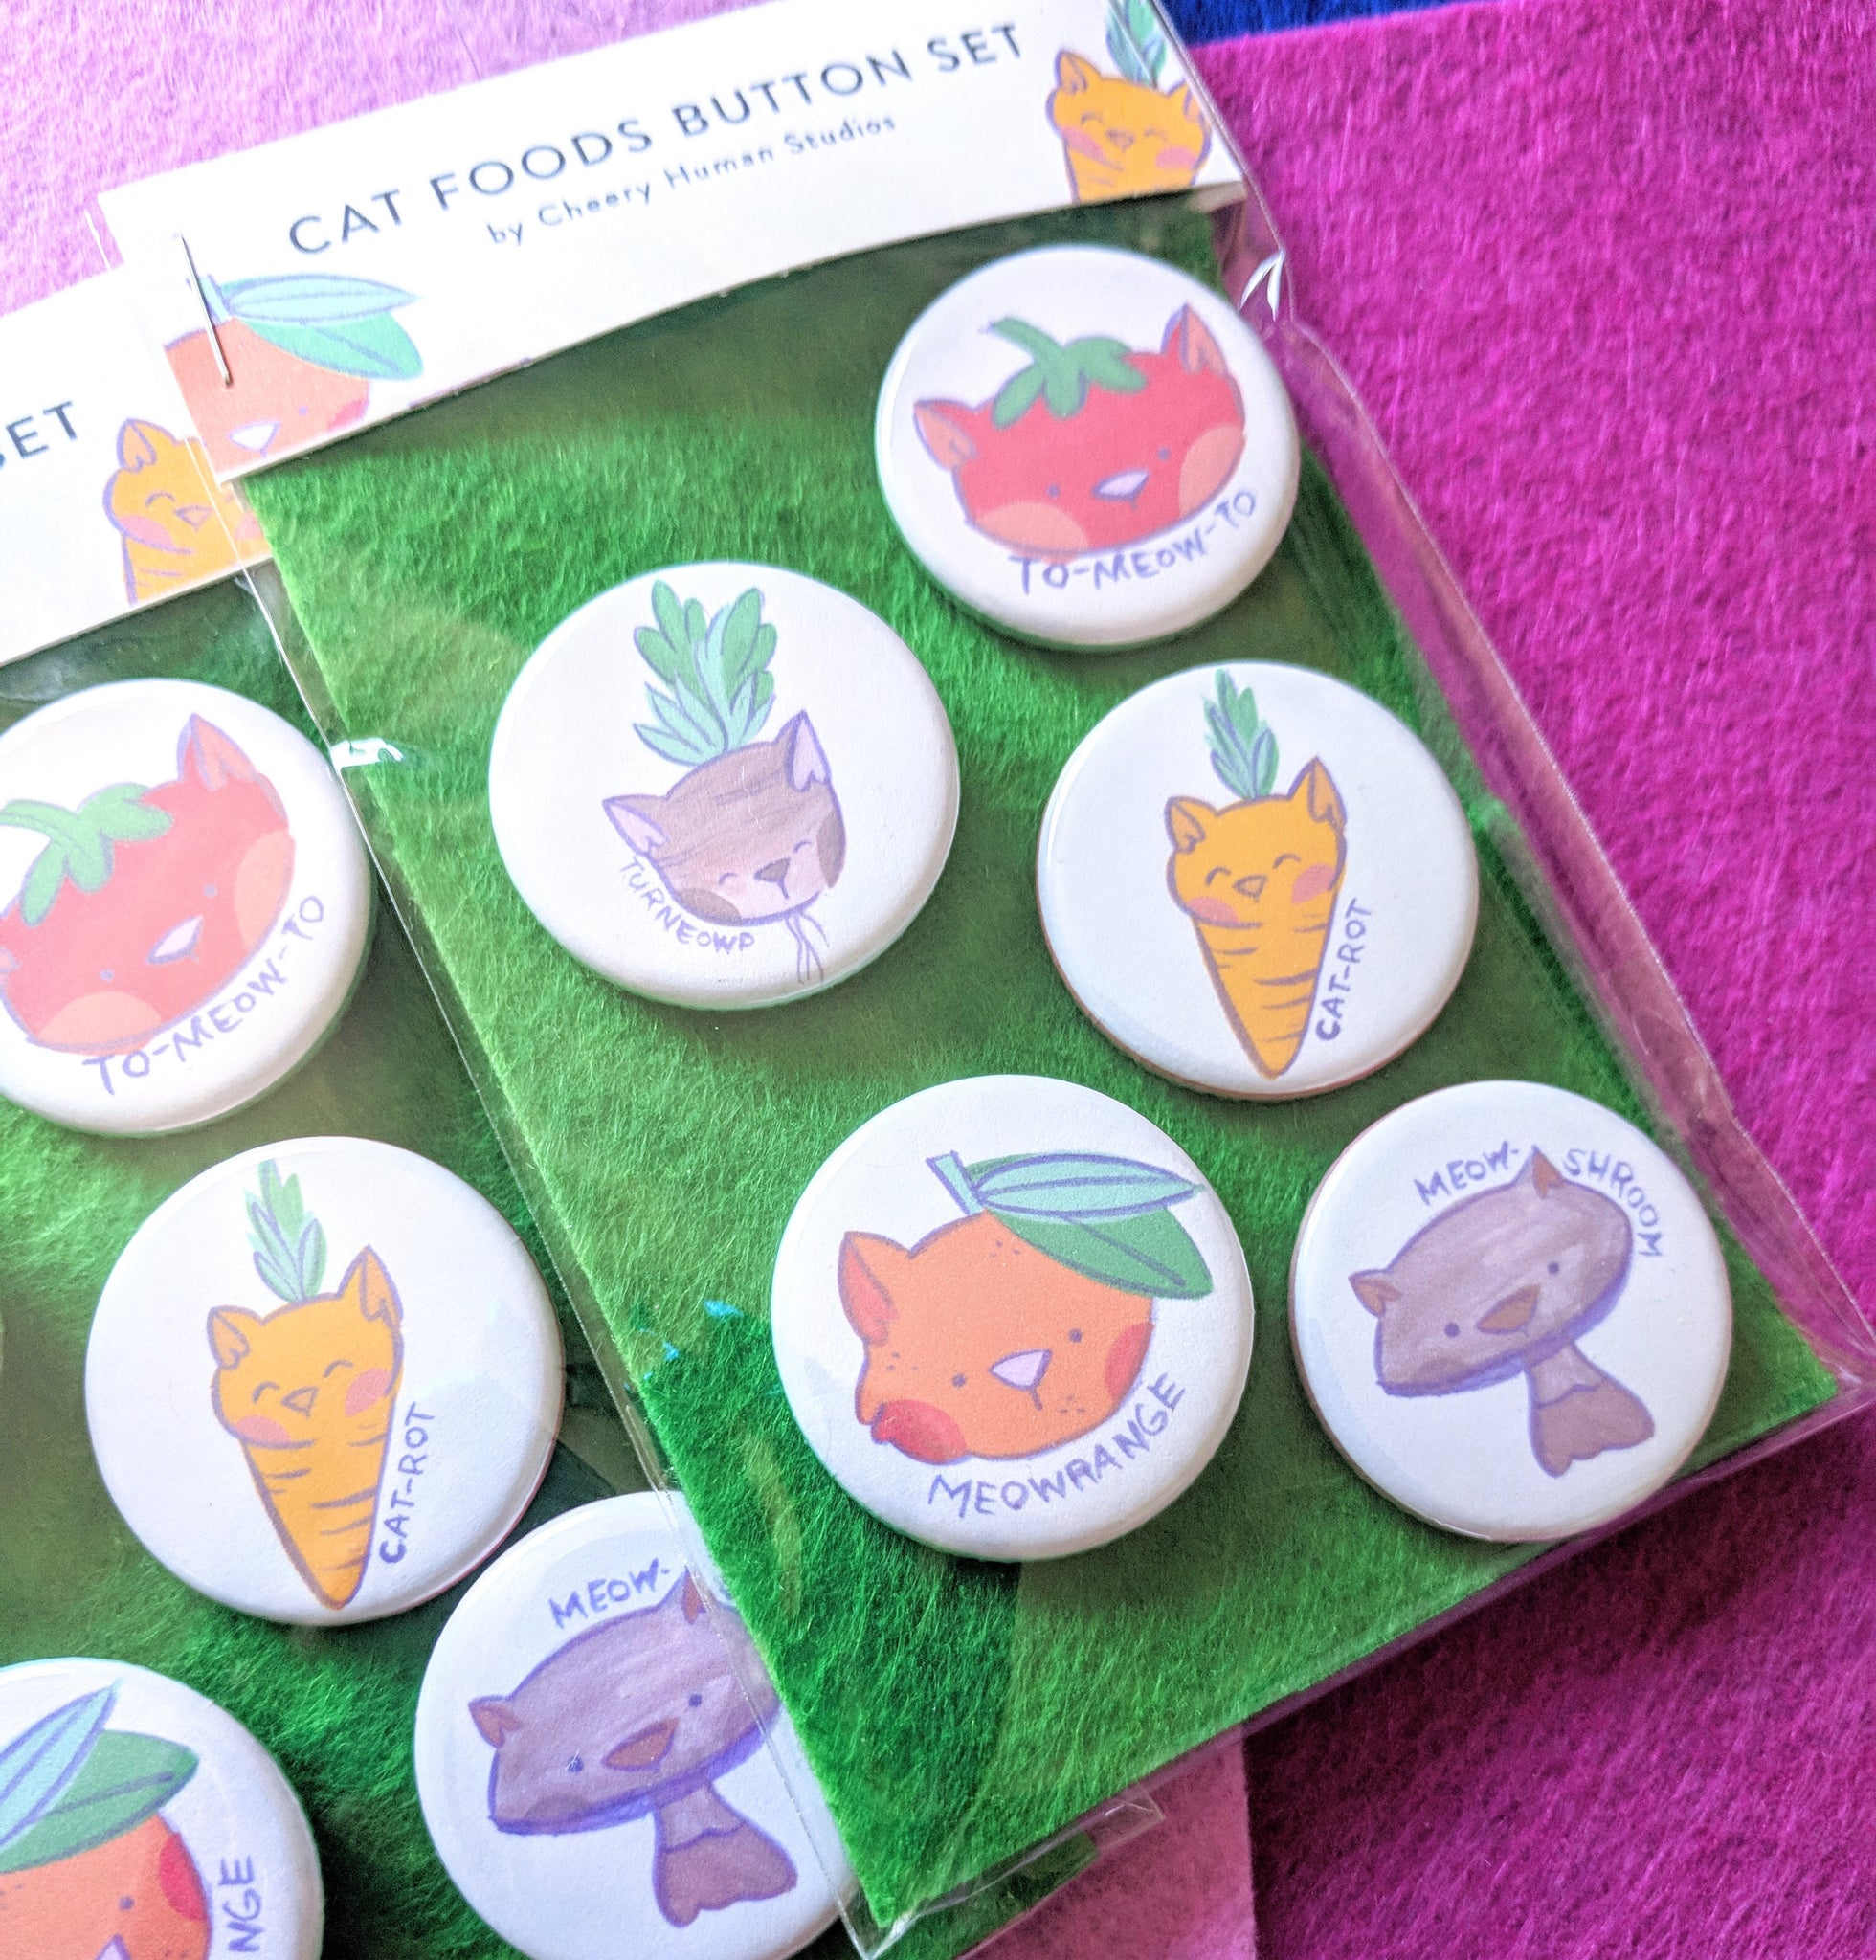 Cat Foods - 5 Button Pack